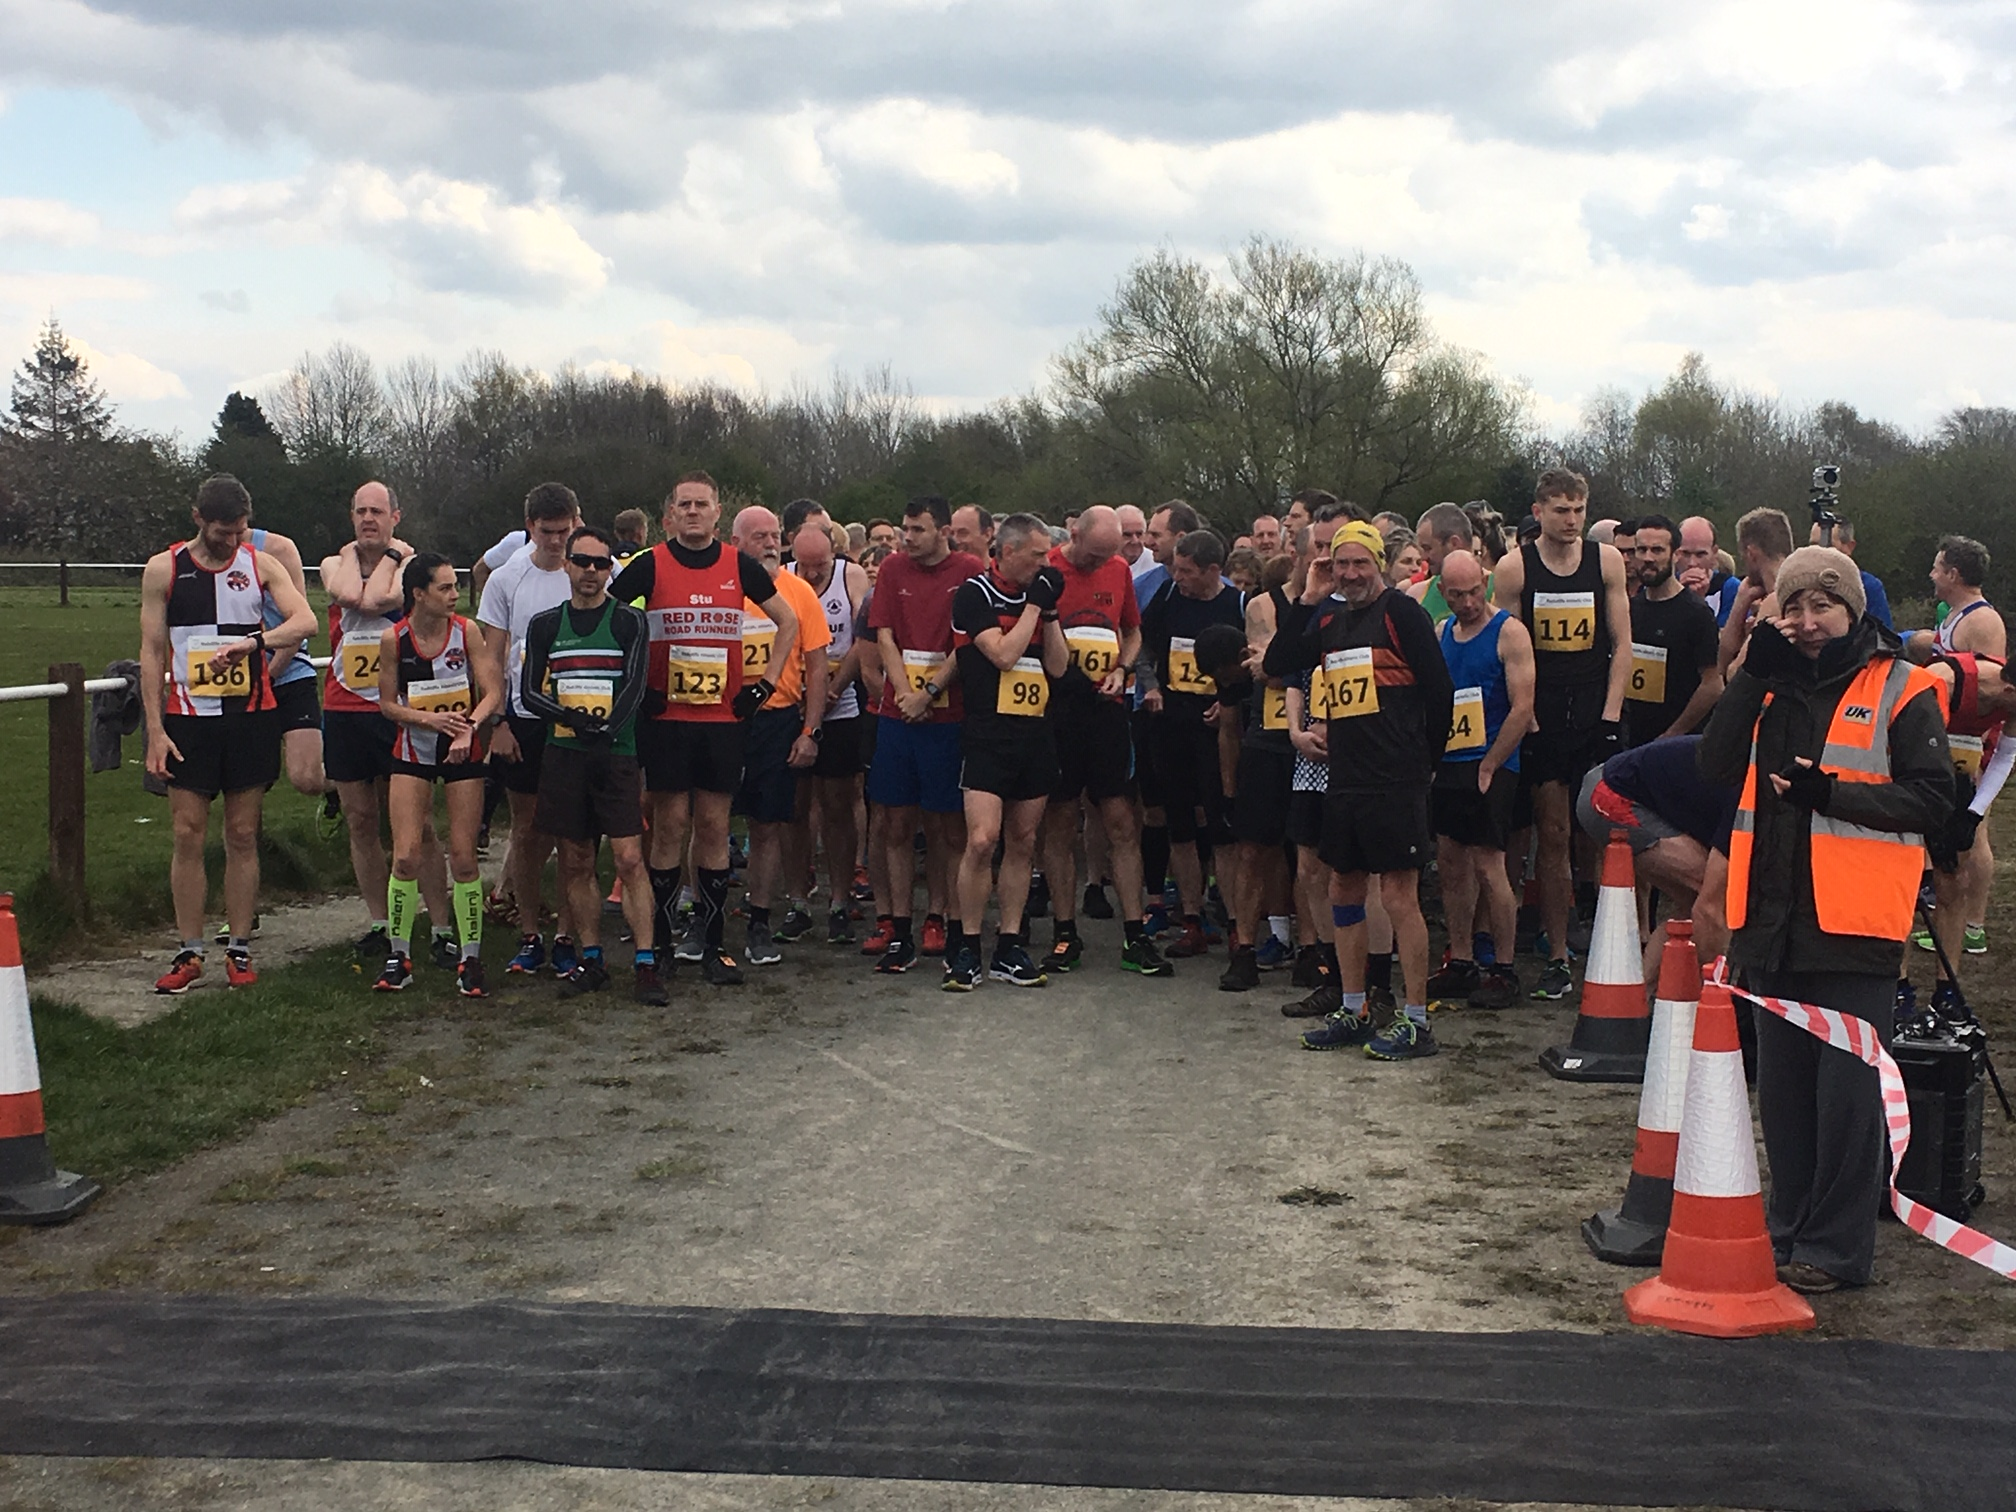 The start of the Radcliffe 10K Trail Race.